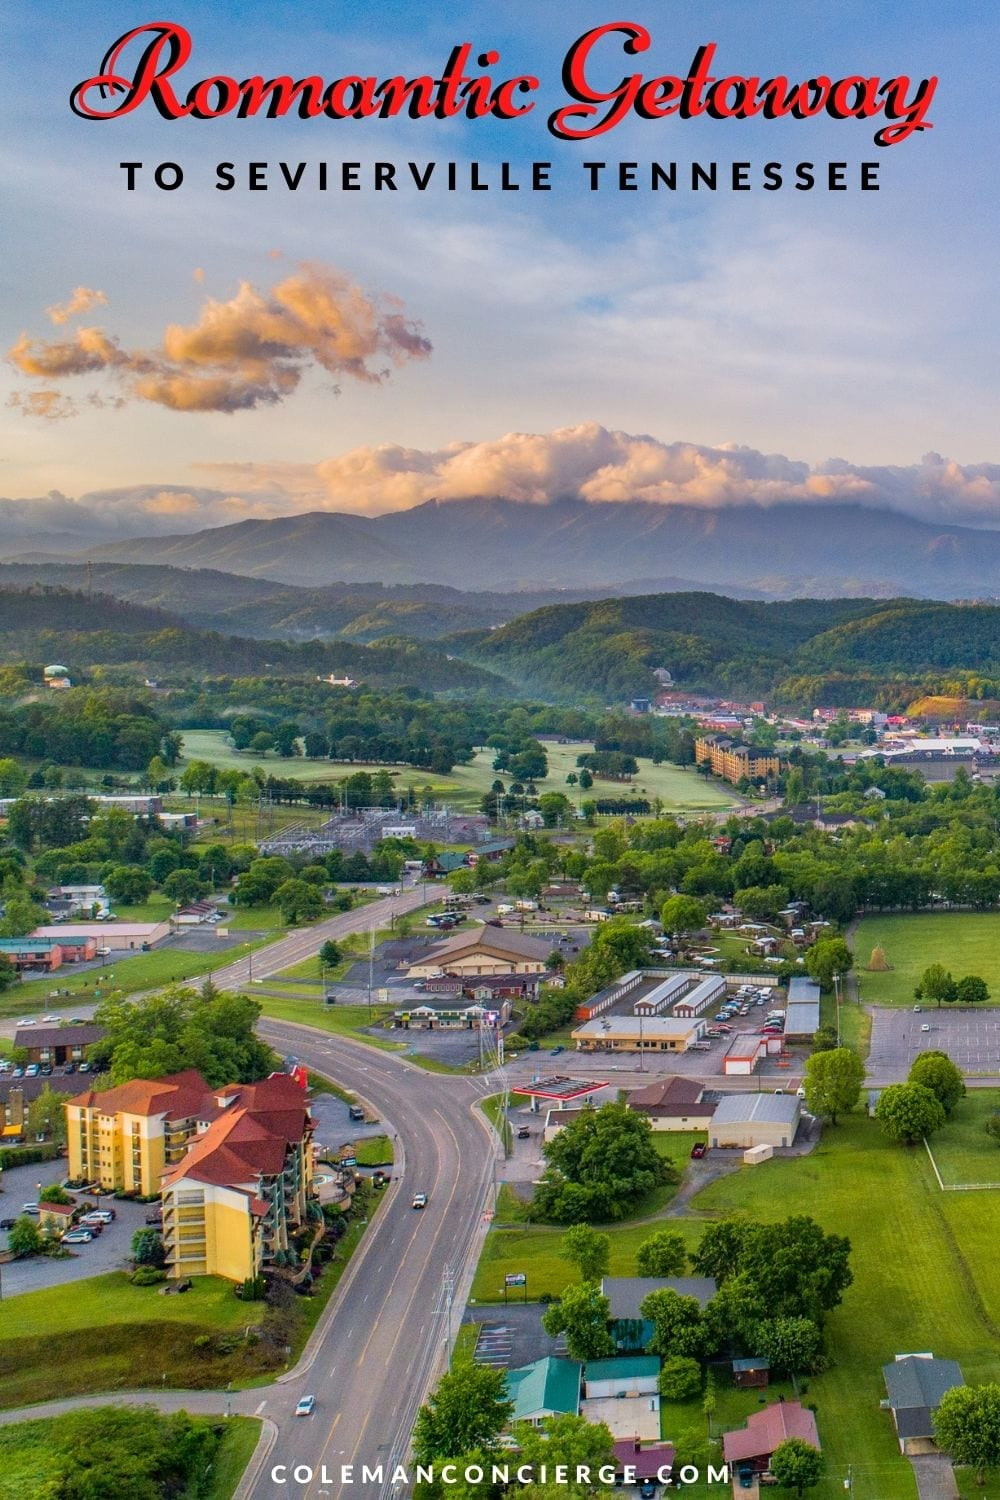 Aerial view of Sevierville